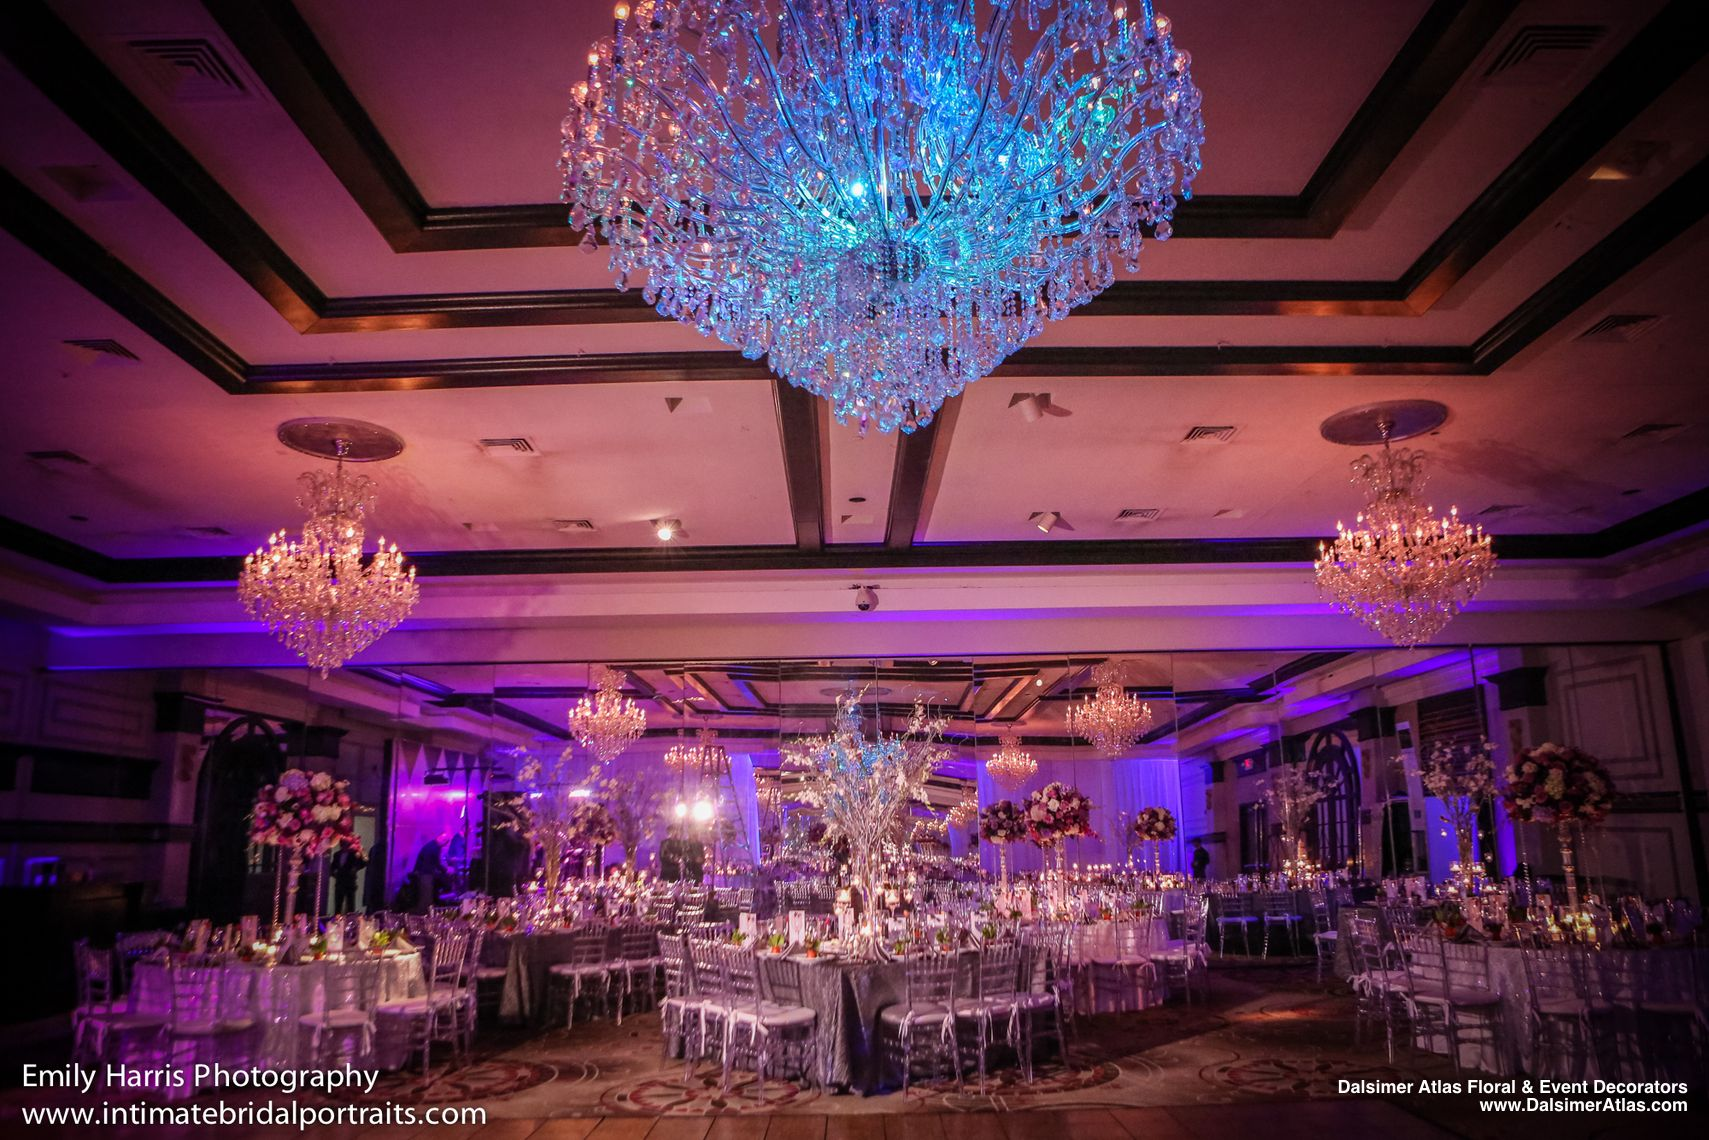 wedding-florist-flowers-decorations-bnai-israel-boca-raton-florida-dalsimer-atlas-25